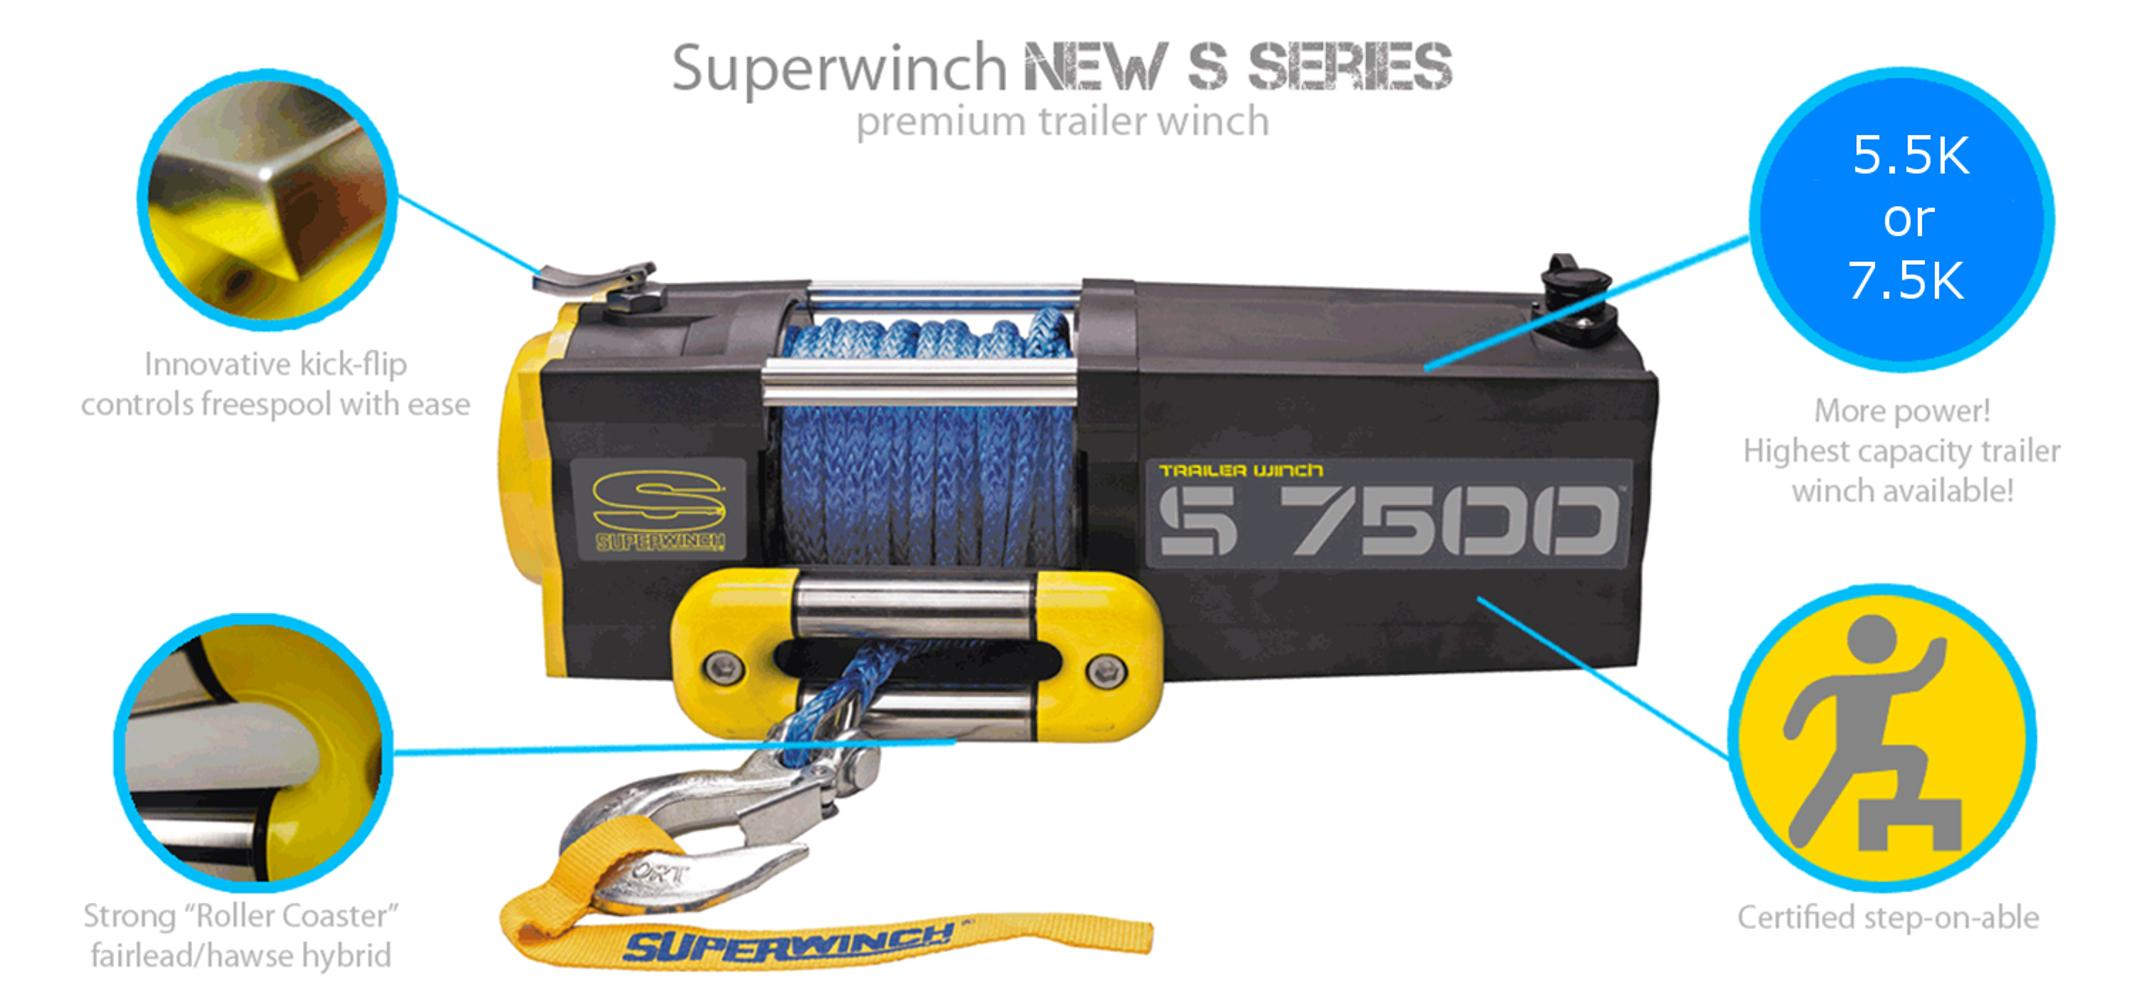 Superwinch 1455201 S5500 SR 12V 5500 lb Winch with Synthetic Rope  on warn solenoid diagram, warn winch control box diagram, warn winch wiring, warn wireless control diagram, warn winch solenoid problems, warn 8274 diagram, warn parts diagram,